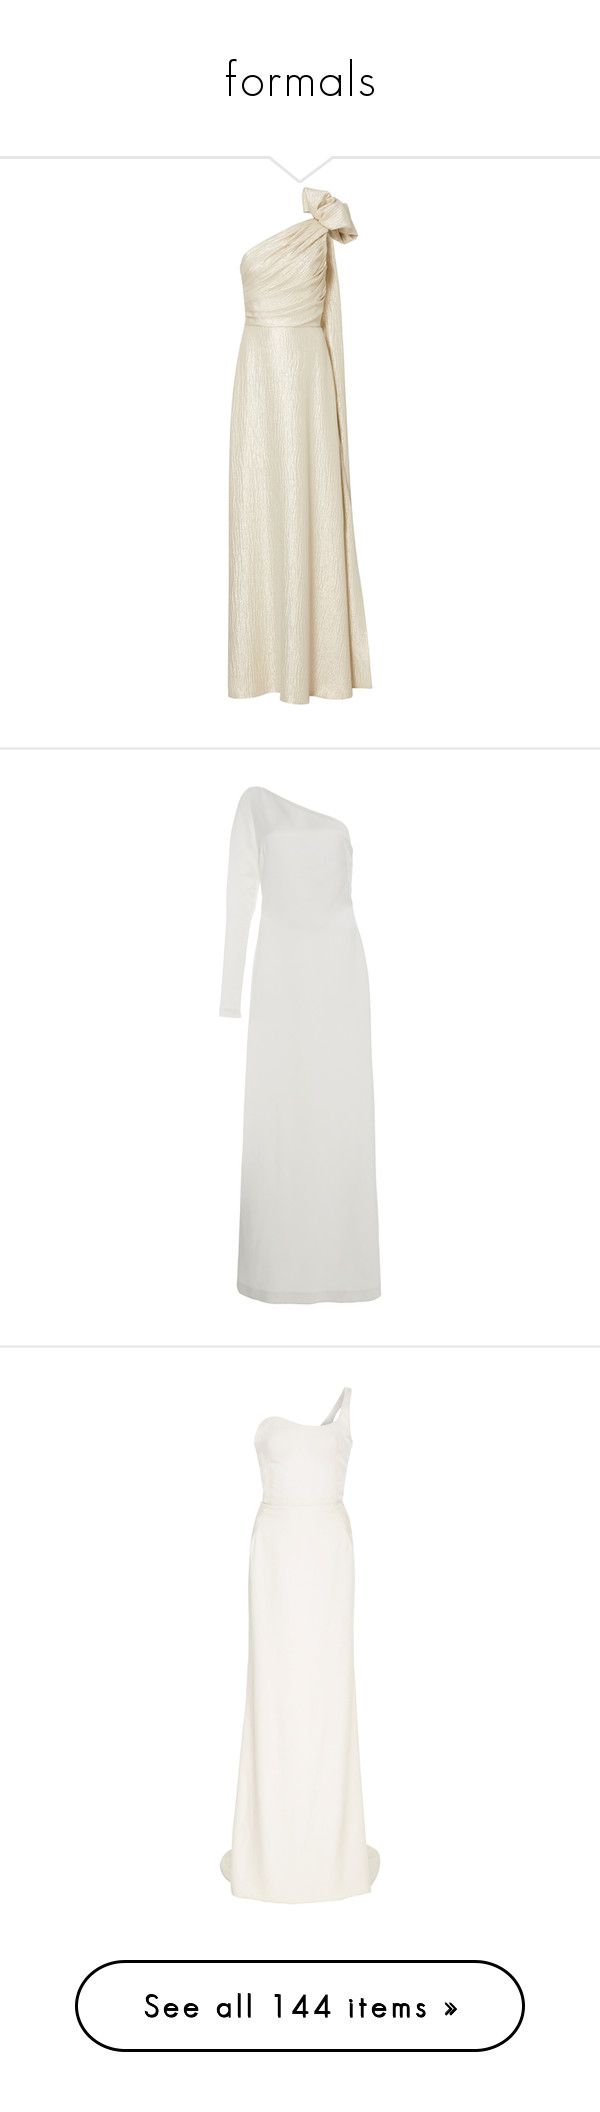 """""""formals"""" by joslinb ❤ liked on Polyvore featuring dresses, gowns, metallic, white ball gowns, one shoulder evening dresses, white one shoulder gown, metallic evening gowns, white evening gowns, white and white long sleeve dress"""